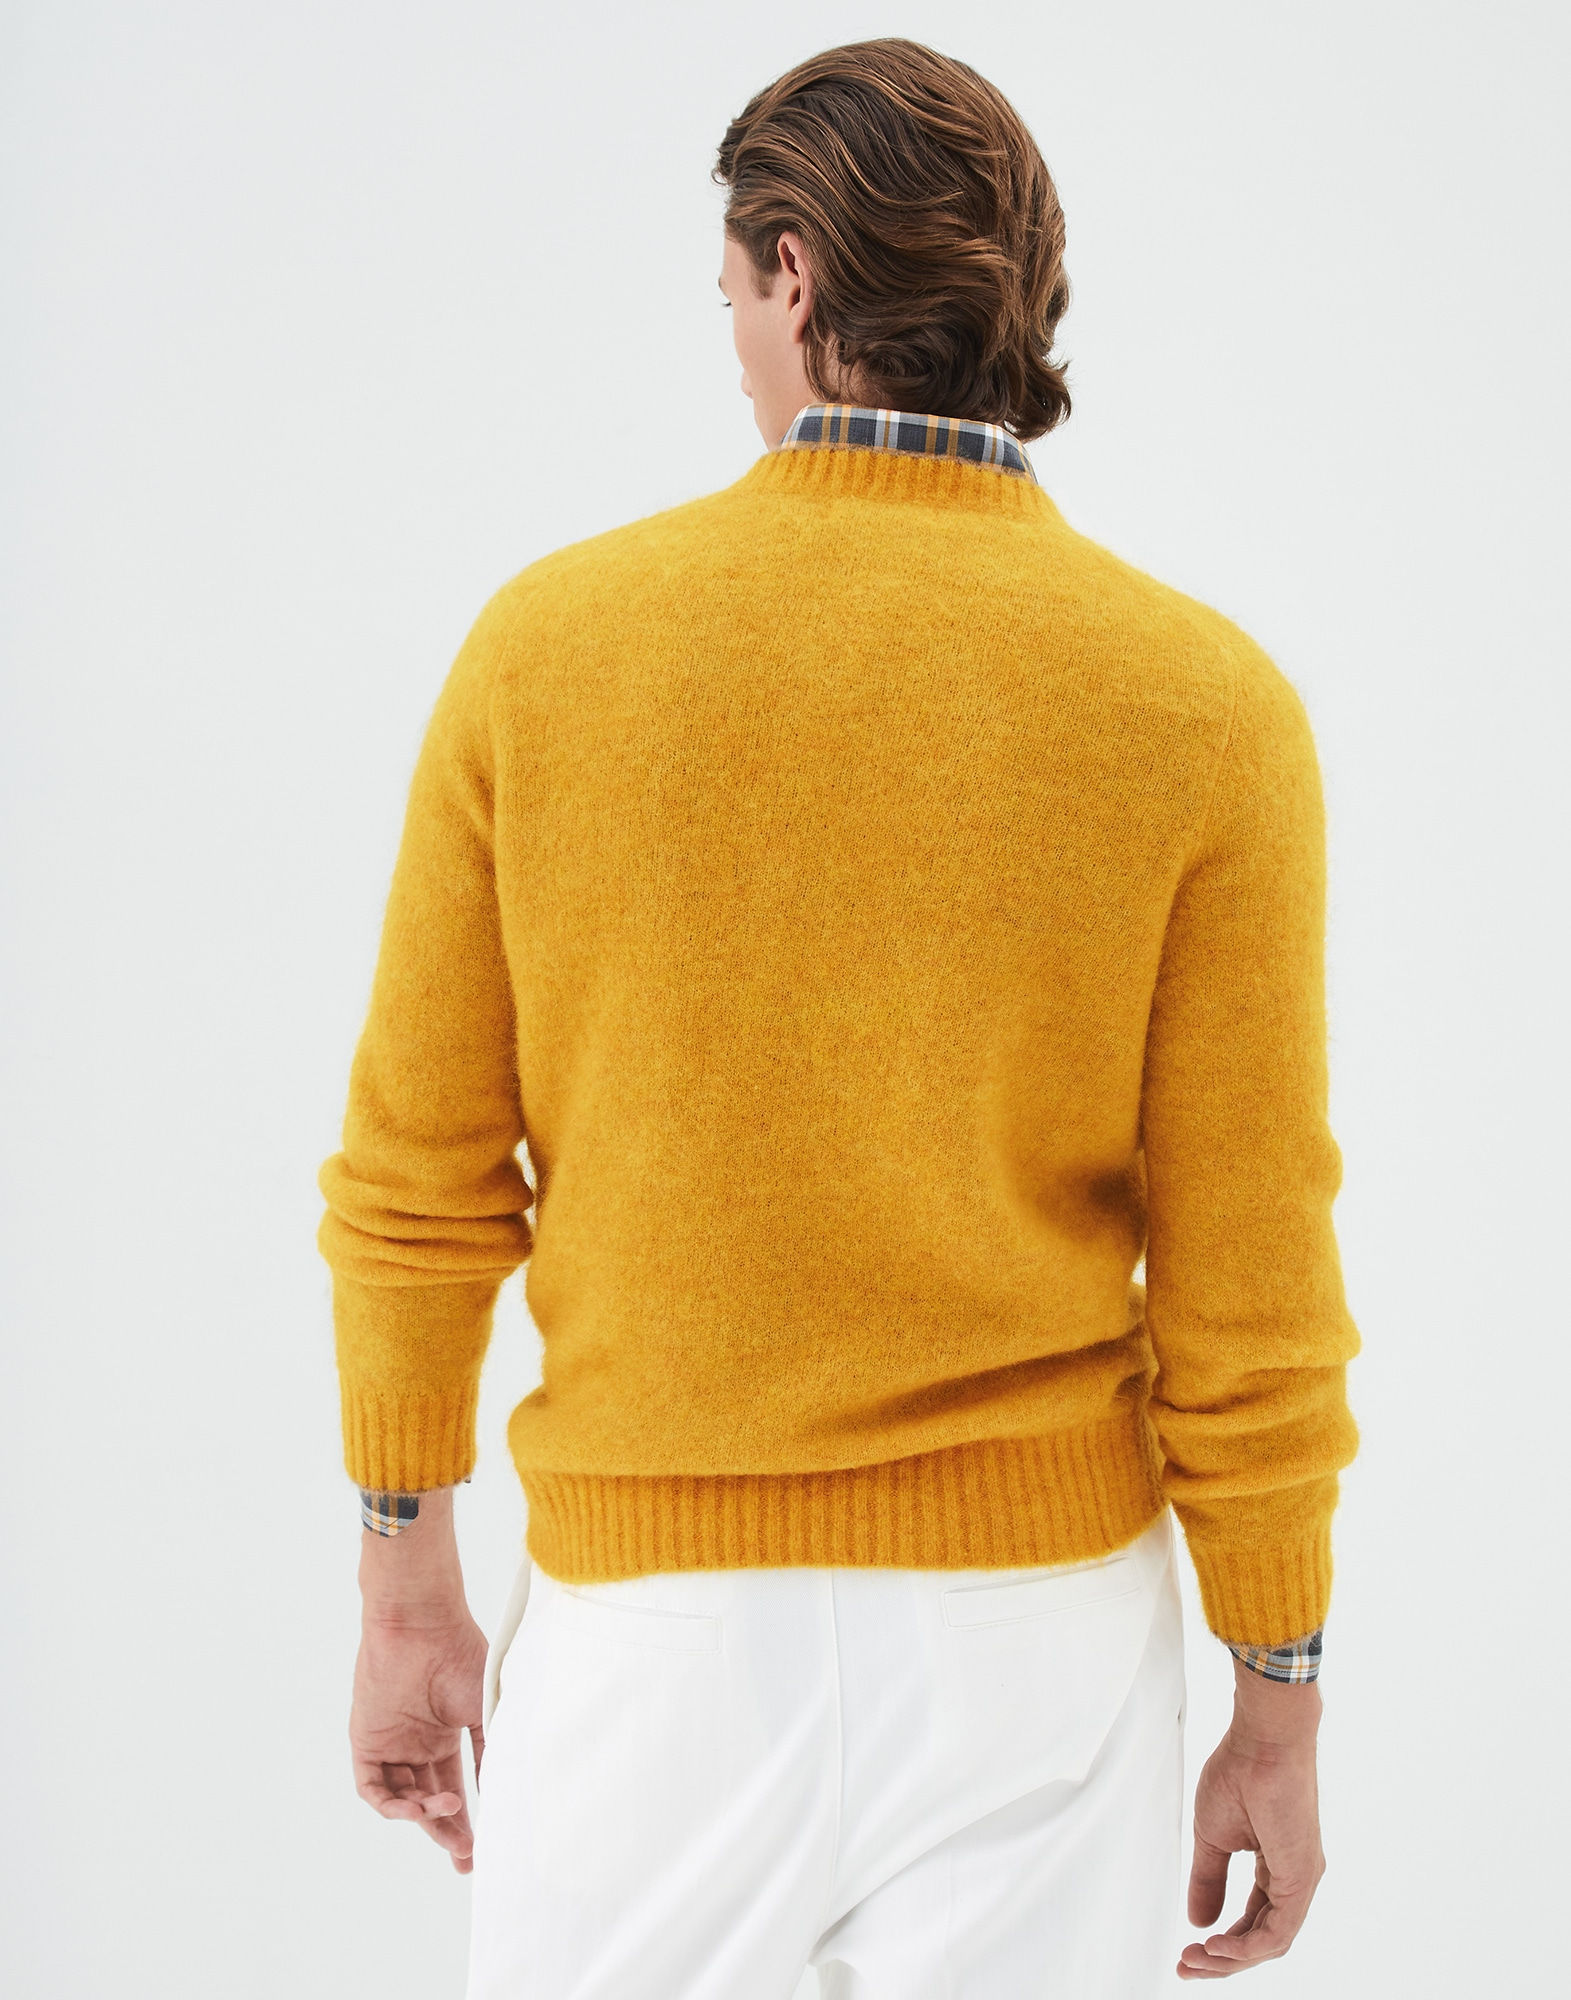 Crewneck Sweater Yellow Man 1 - Brunello Cucinelli